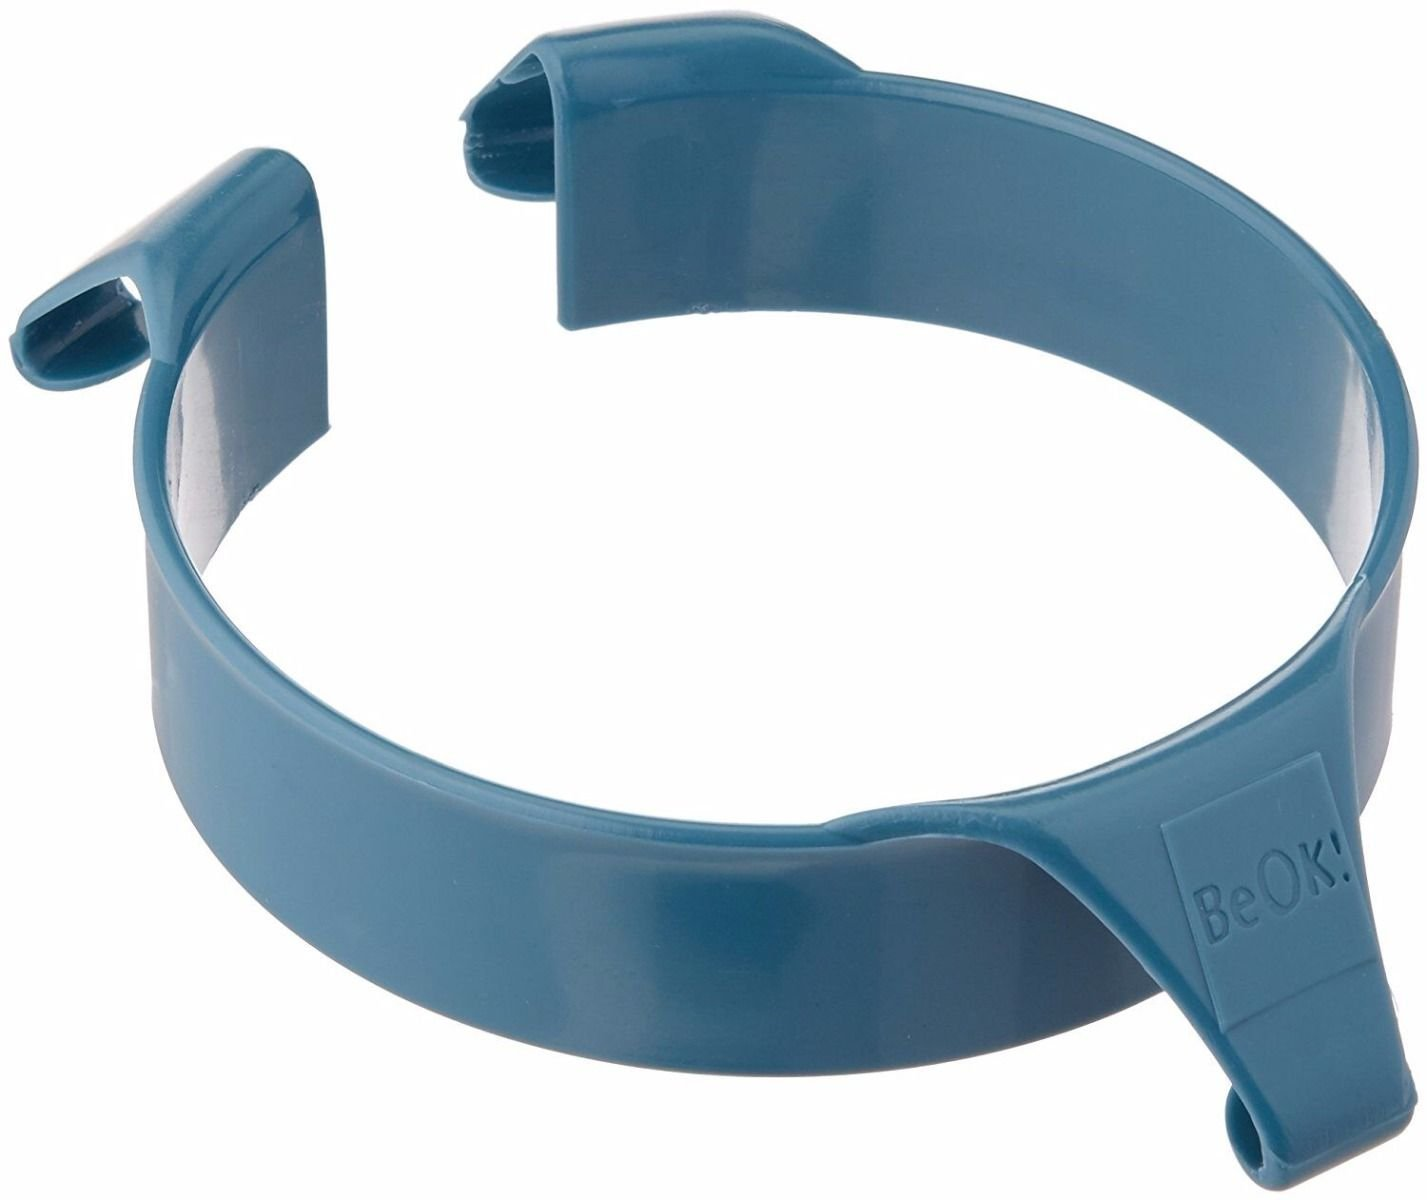 Patterson Medical Plastic Food Guard - Blue by P. (Image #1)